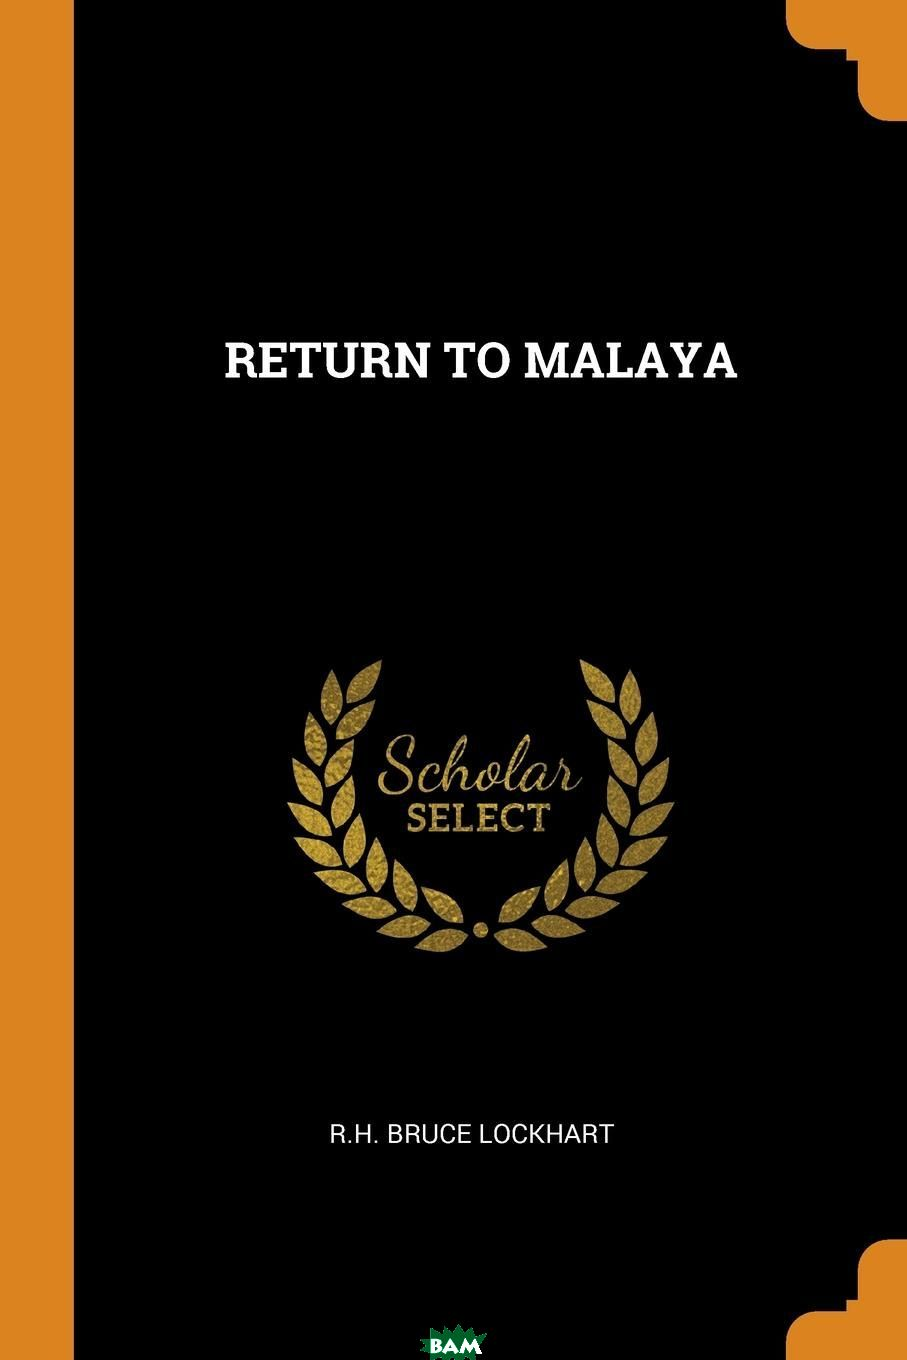 Купить RETURN TO MALAYA, RH BRUCE LOCKHART, 9780353349087